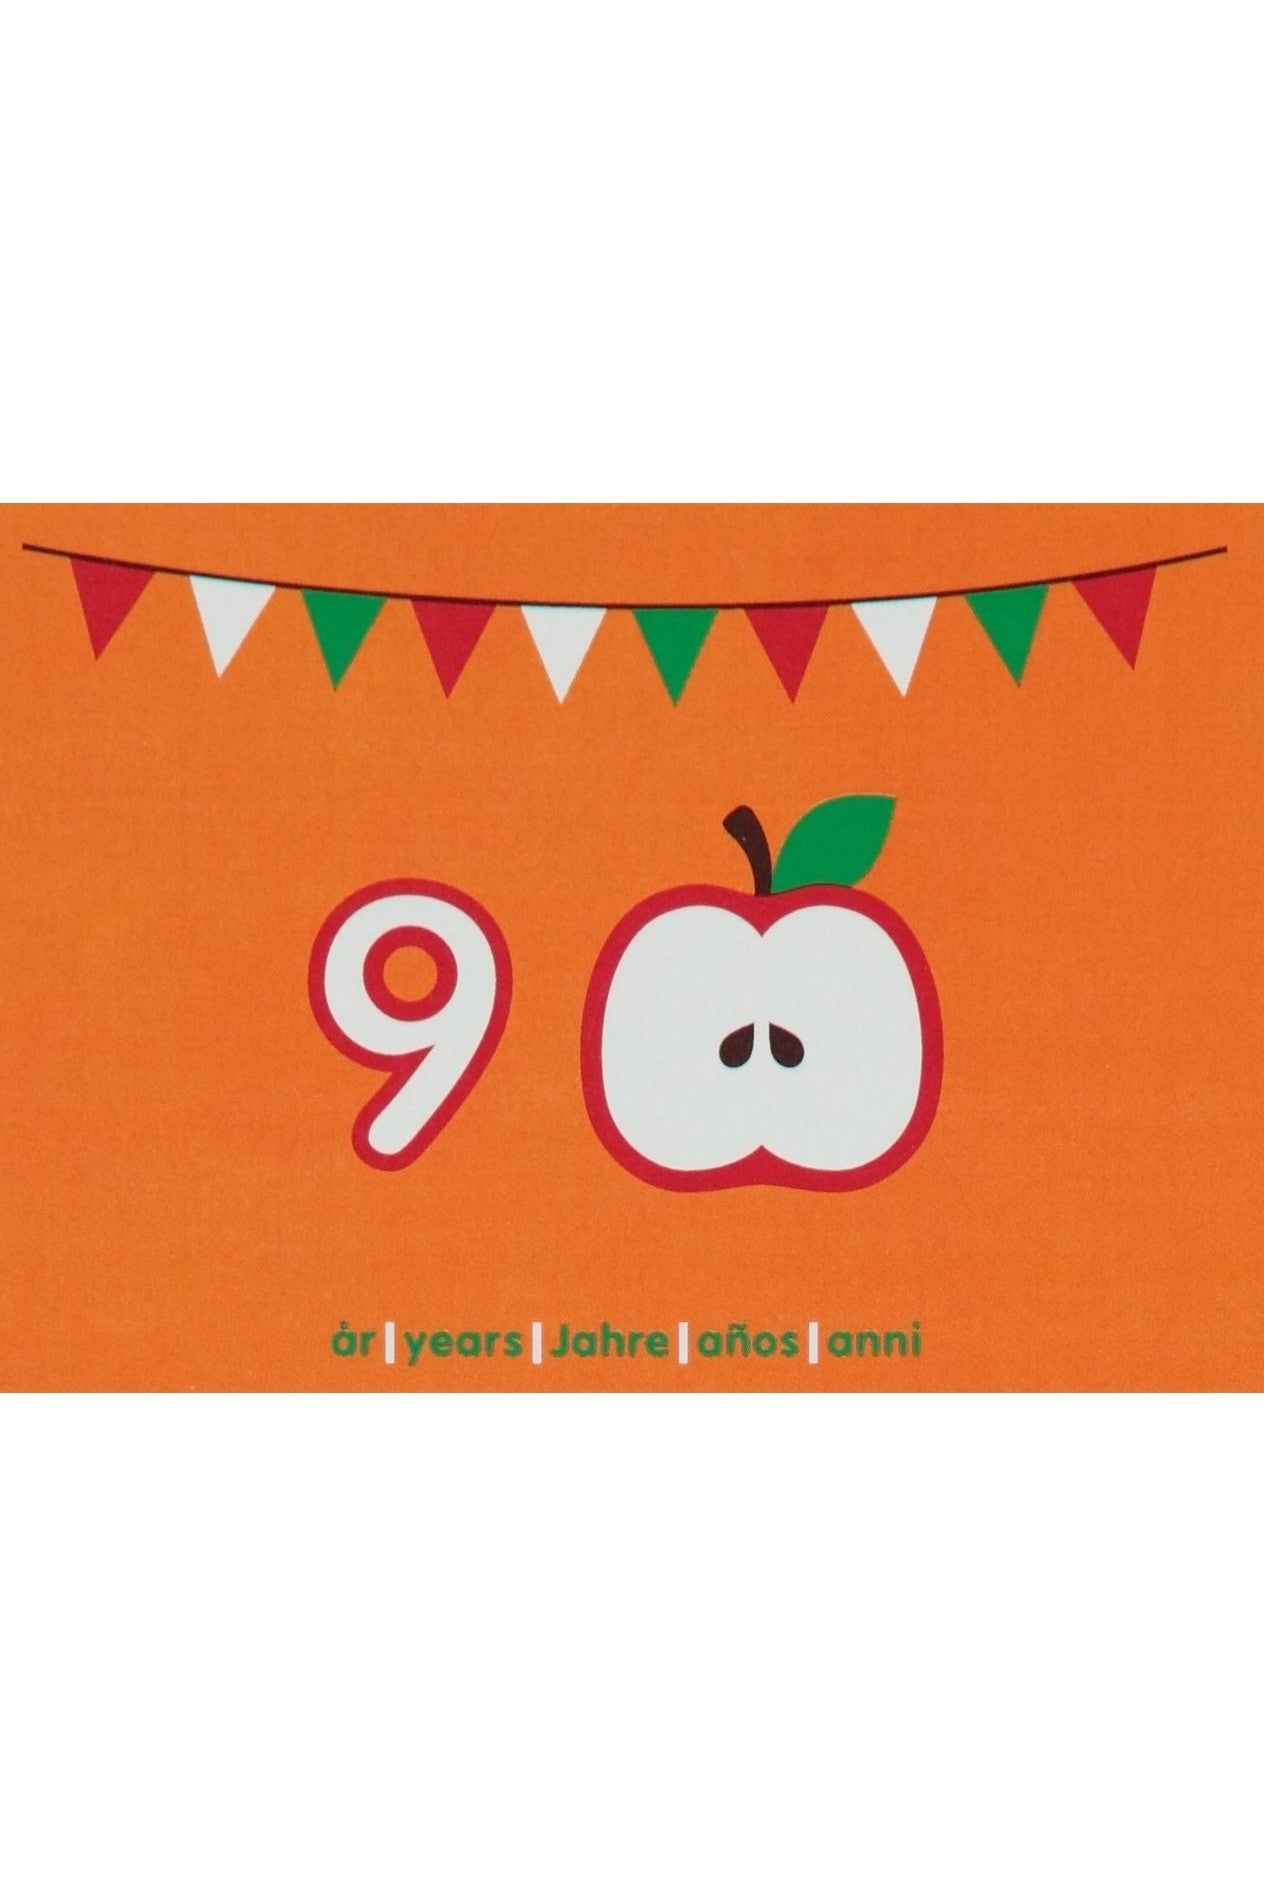 9th Birthday Card - Motive - Apple - Maxomorra Accessories - Snugglefox